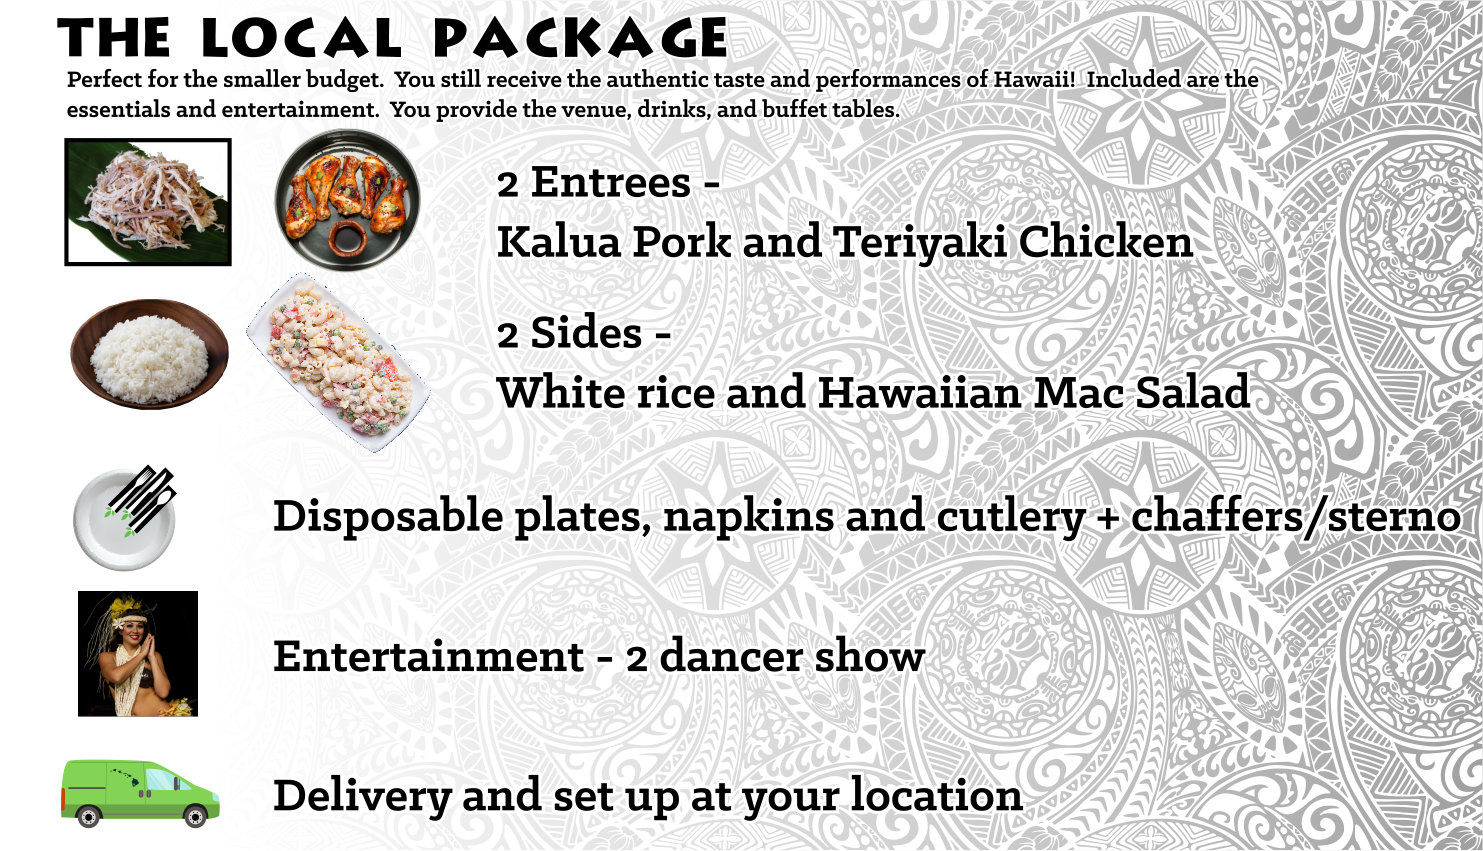 Perfect for the smaller budget. You still receive the authentic taste and performances of Hawaii. Included are the essentials and entertainment. You provide the venue, drinks, and buffet tables.  $19 45 /person for 40-65 persons, $15 45 /person for 66-120 persons, $13 45 /person for 121-180 persons, $12 45 /person for 181-250 persons, $10 45 /person for 251 or more persons